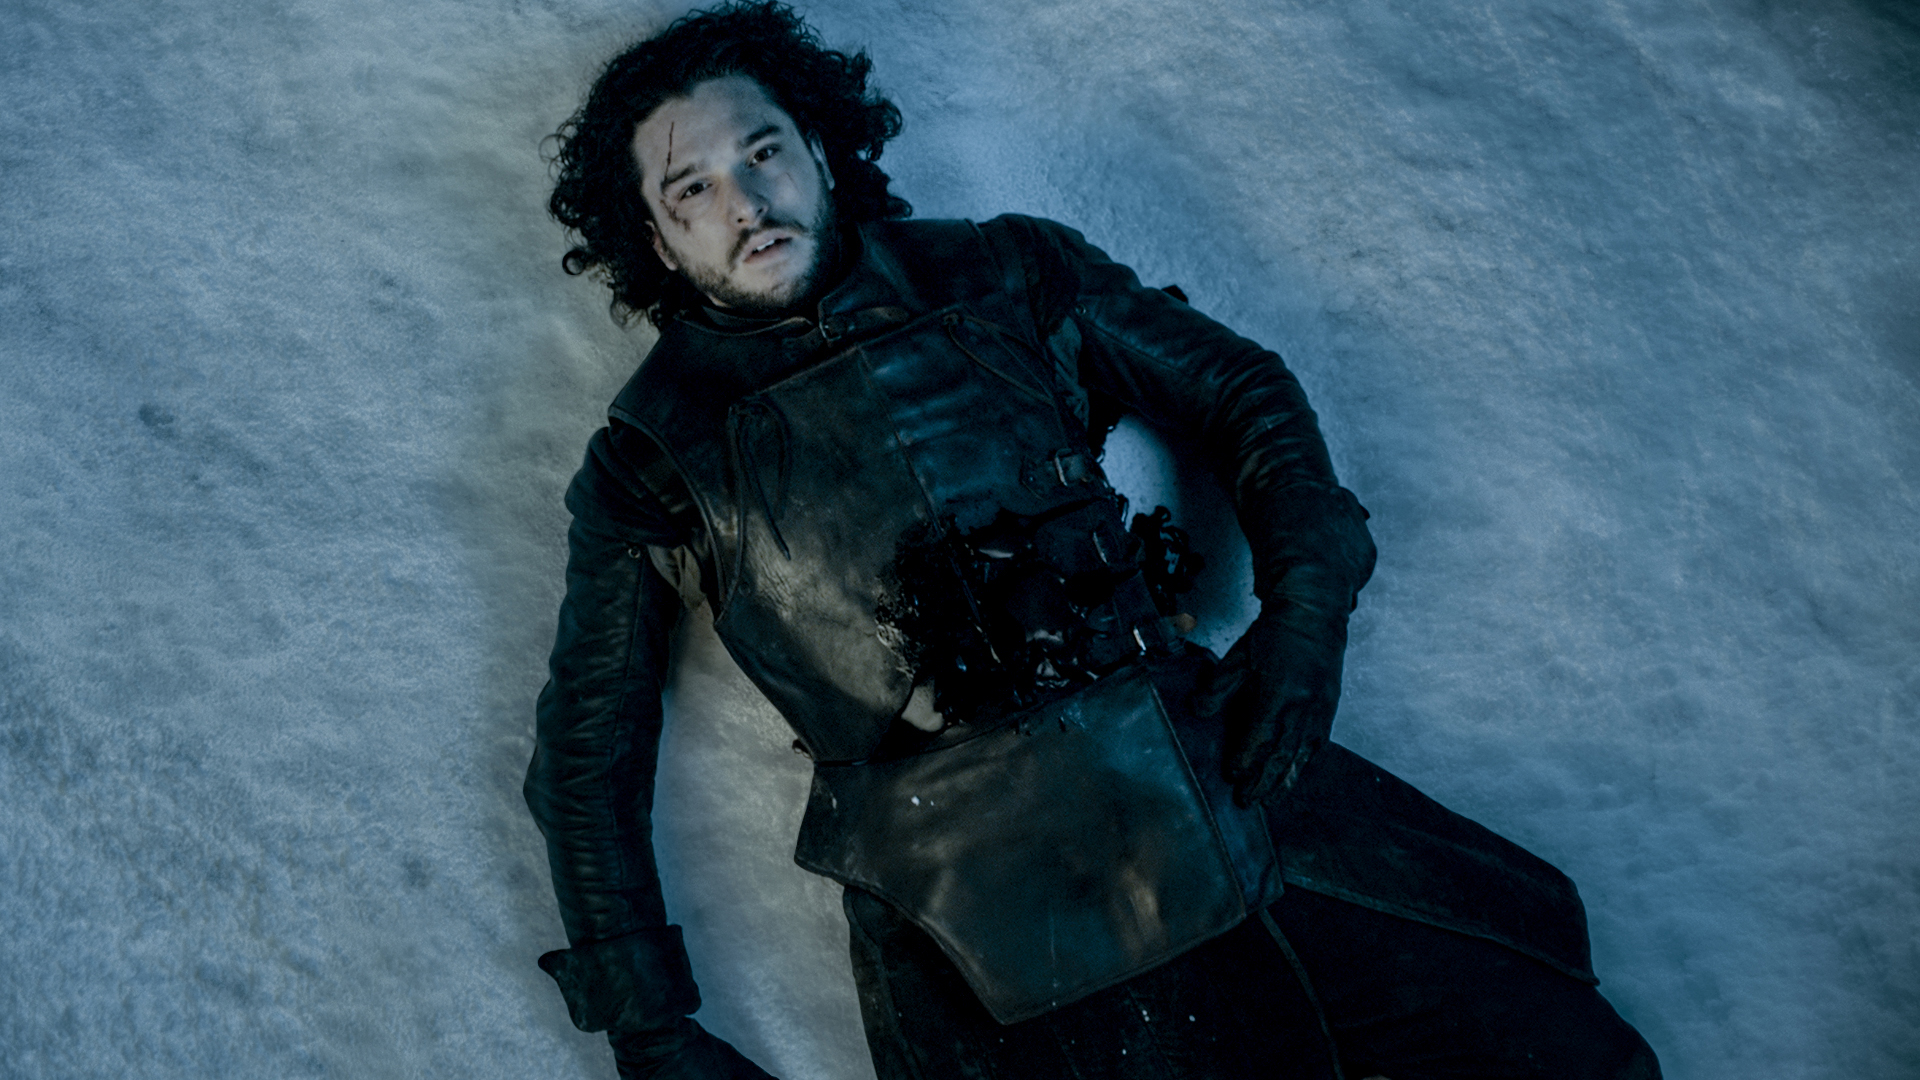 Game of Thrones Season 5 finale